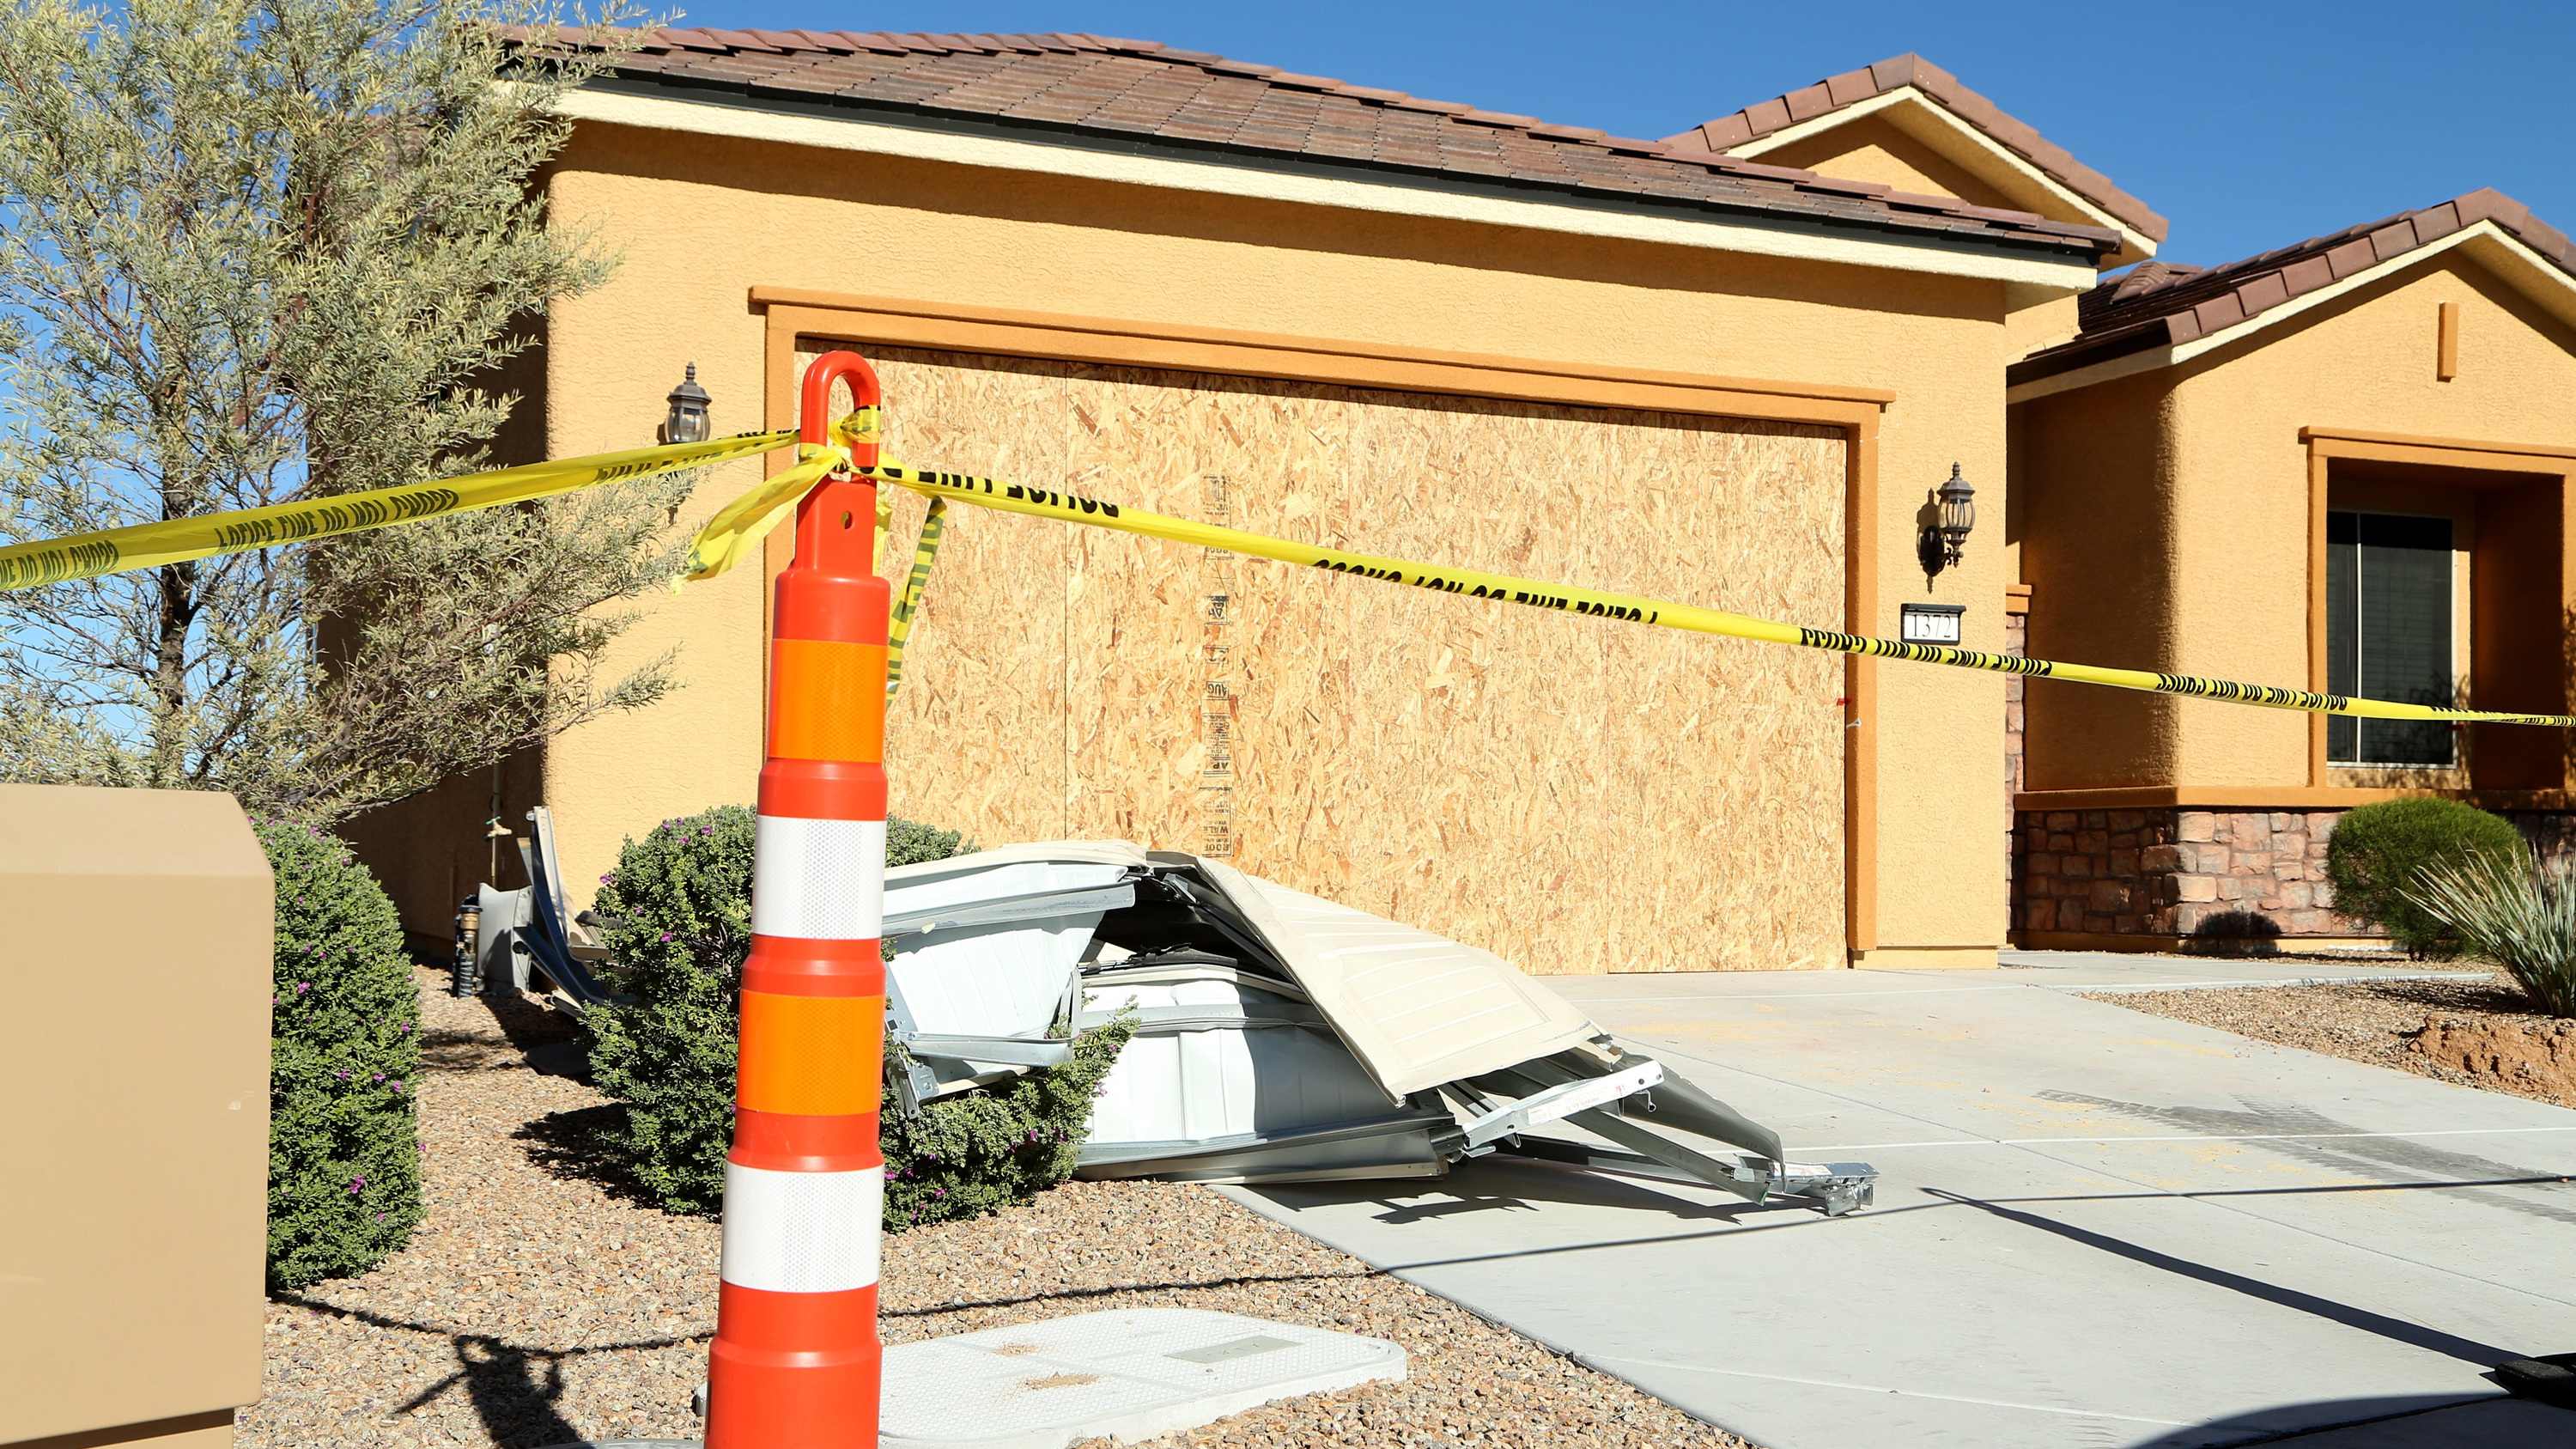 Remains of the garage door sit in the driveway at the house where Las Vegas gunman Stephen Paddock lived in the Sun City community in Mesquite, Nev. (Gabe Ginsberg/Getty Images)